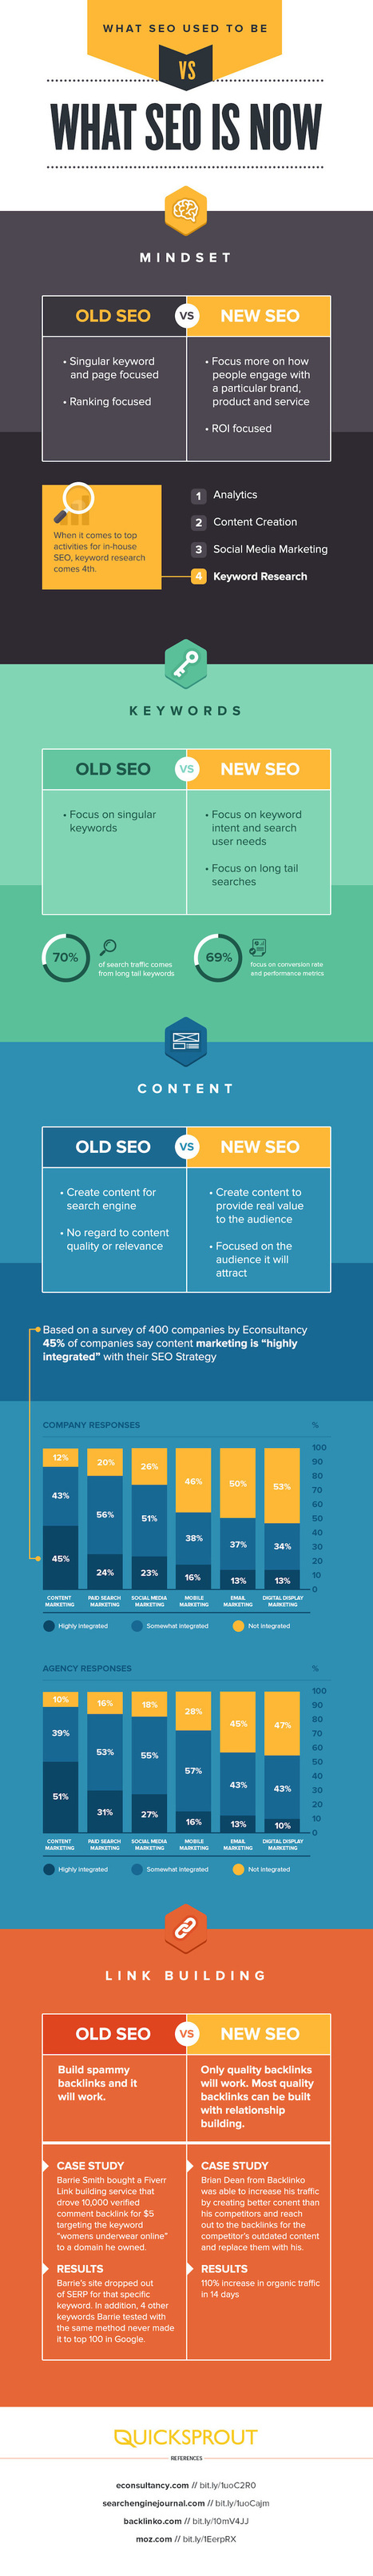 The Old SEO Versus The New SEO [INFOGRAPHIC] | Another Point of View | Scoop.it